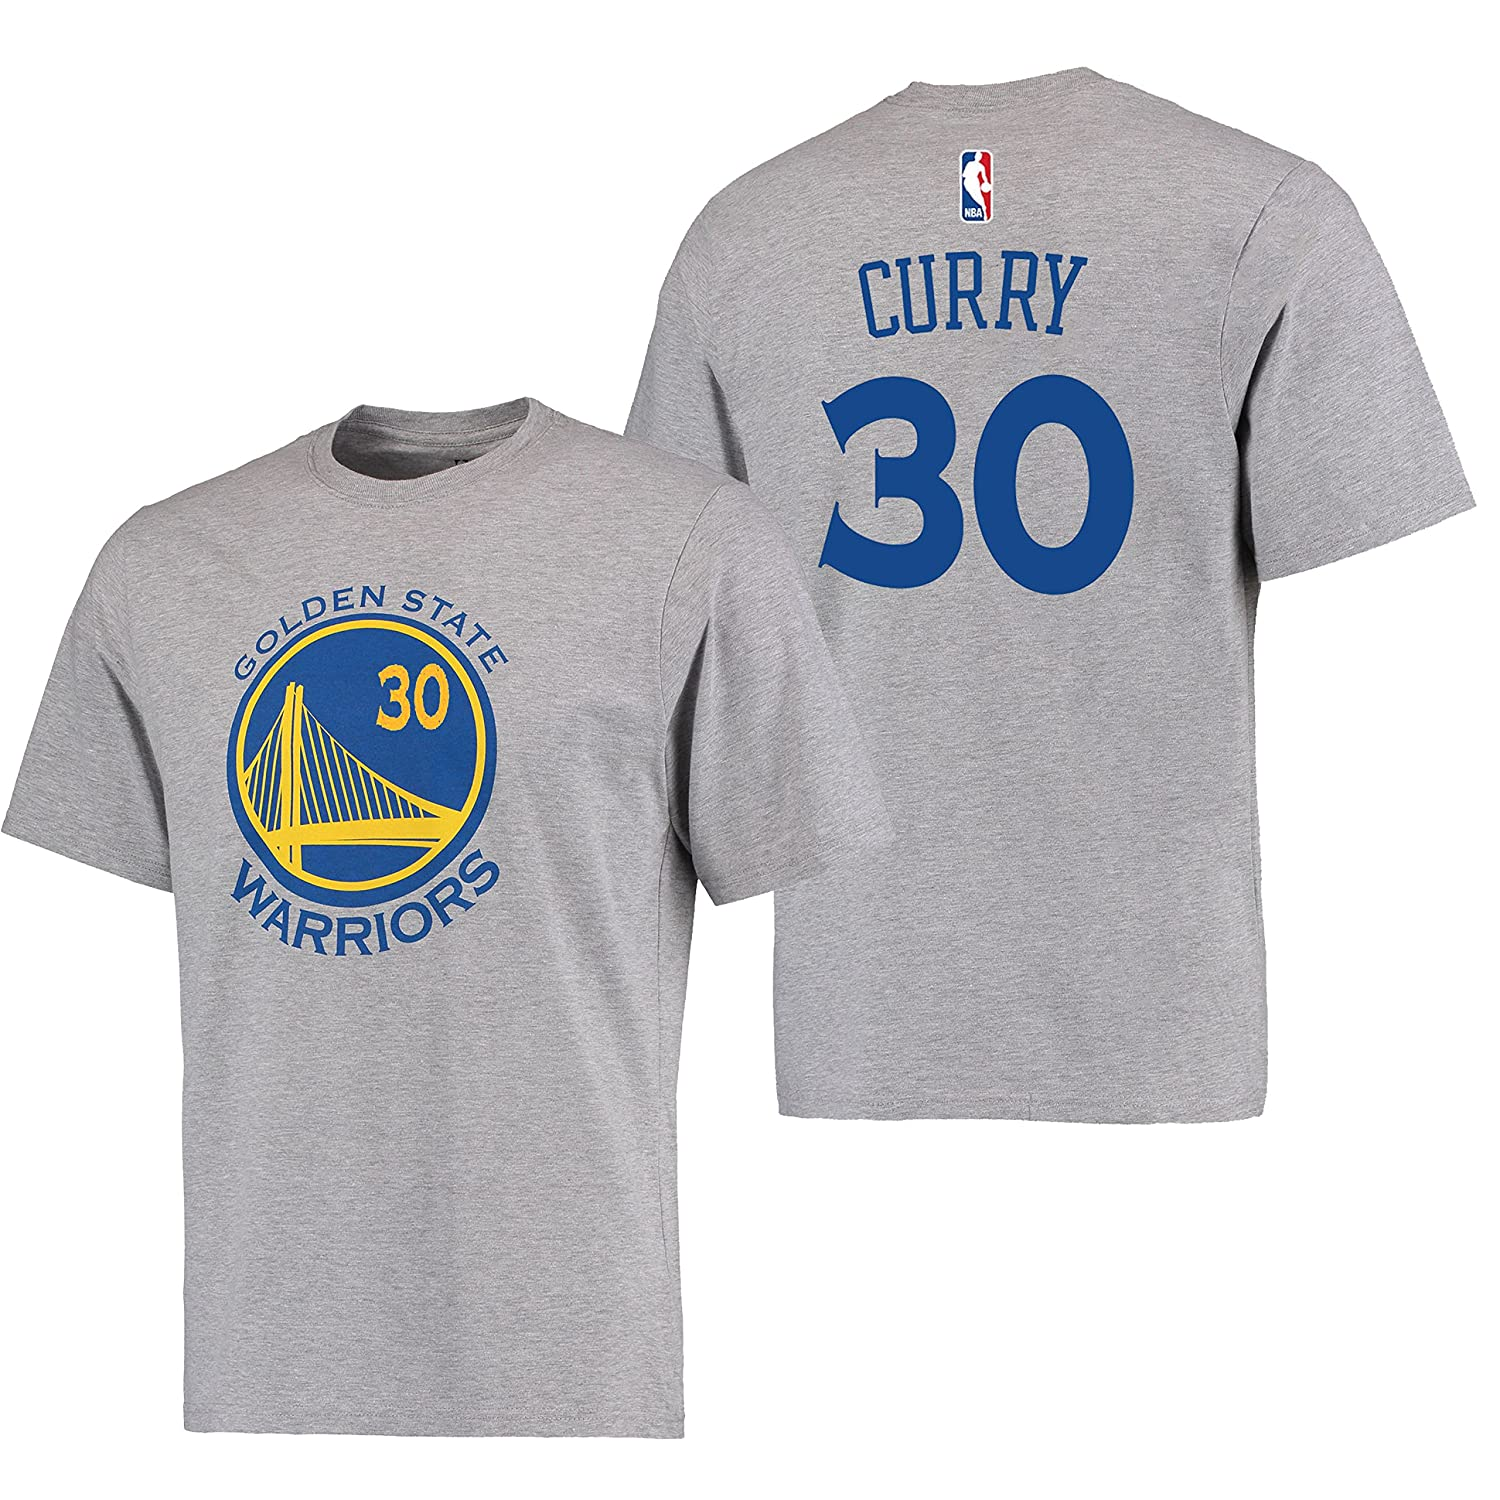 the latest c3d35 c426c curry t shirt